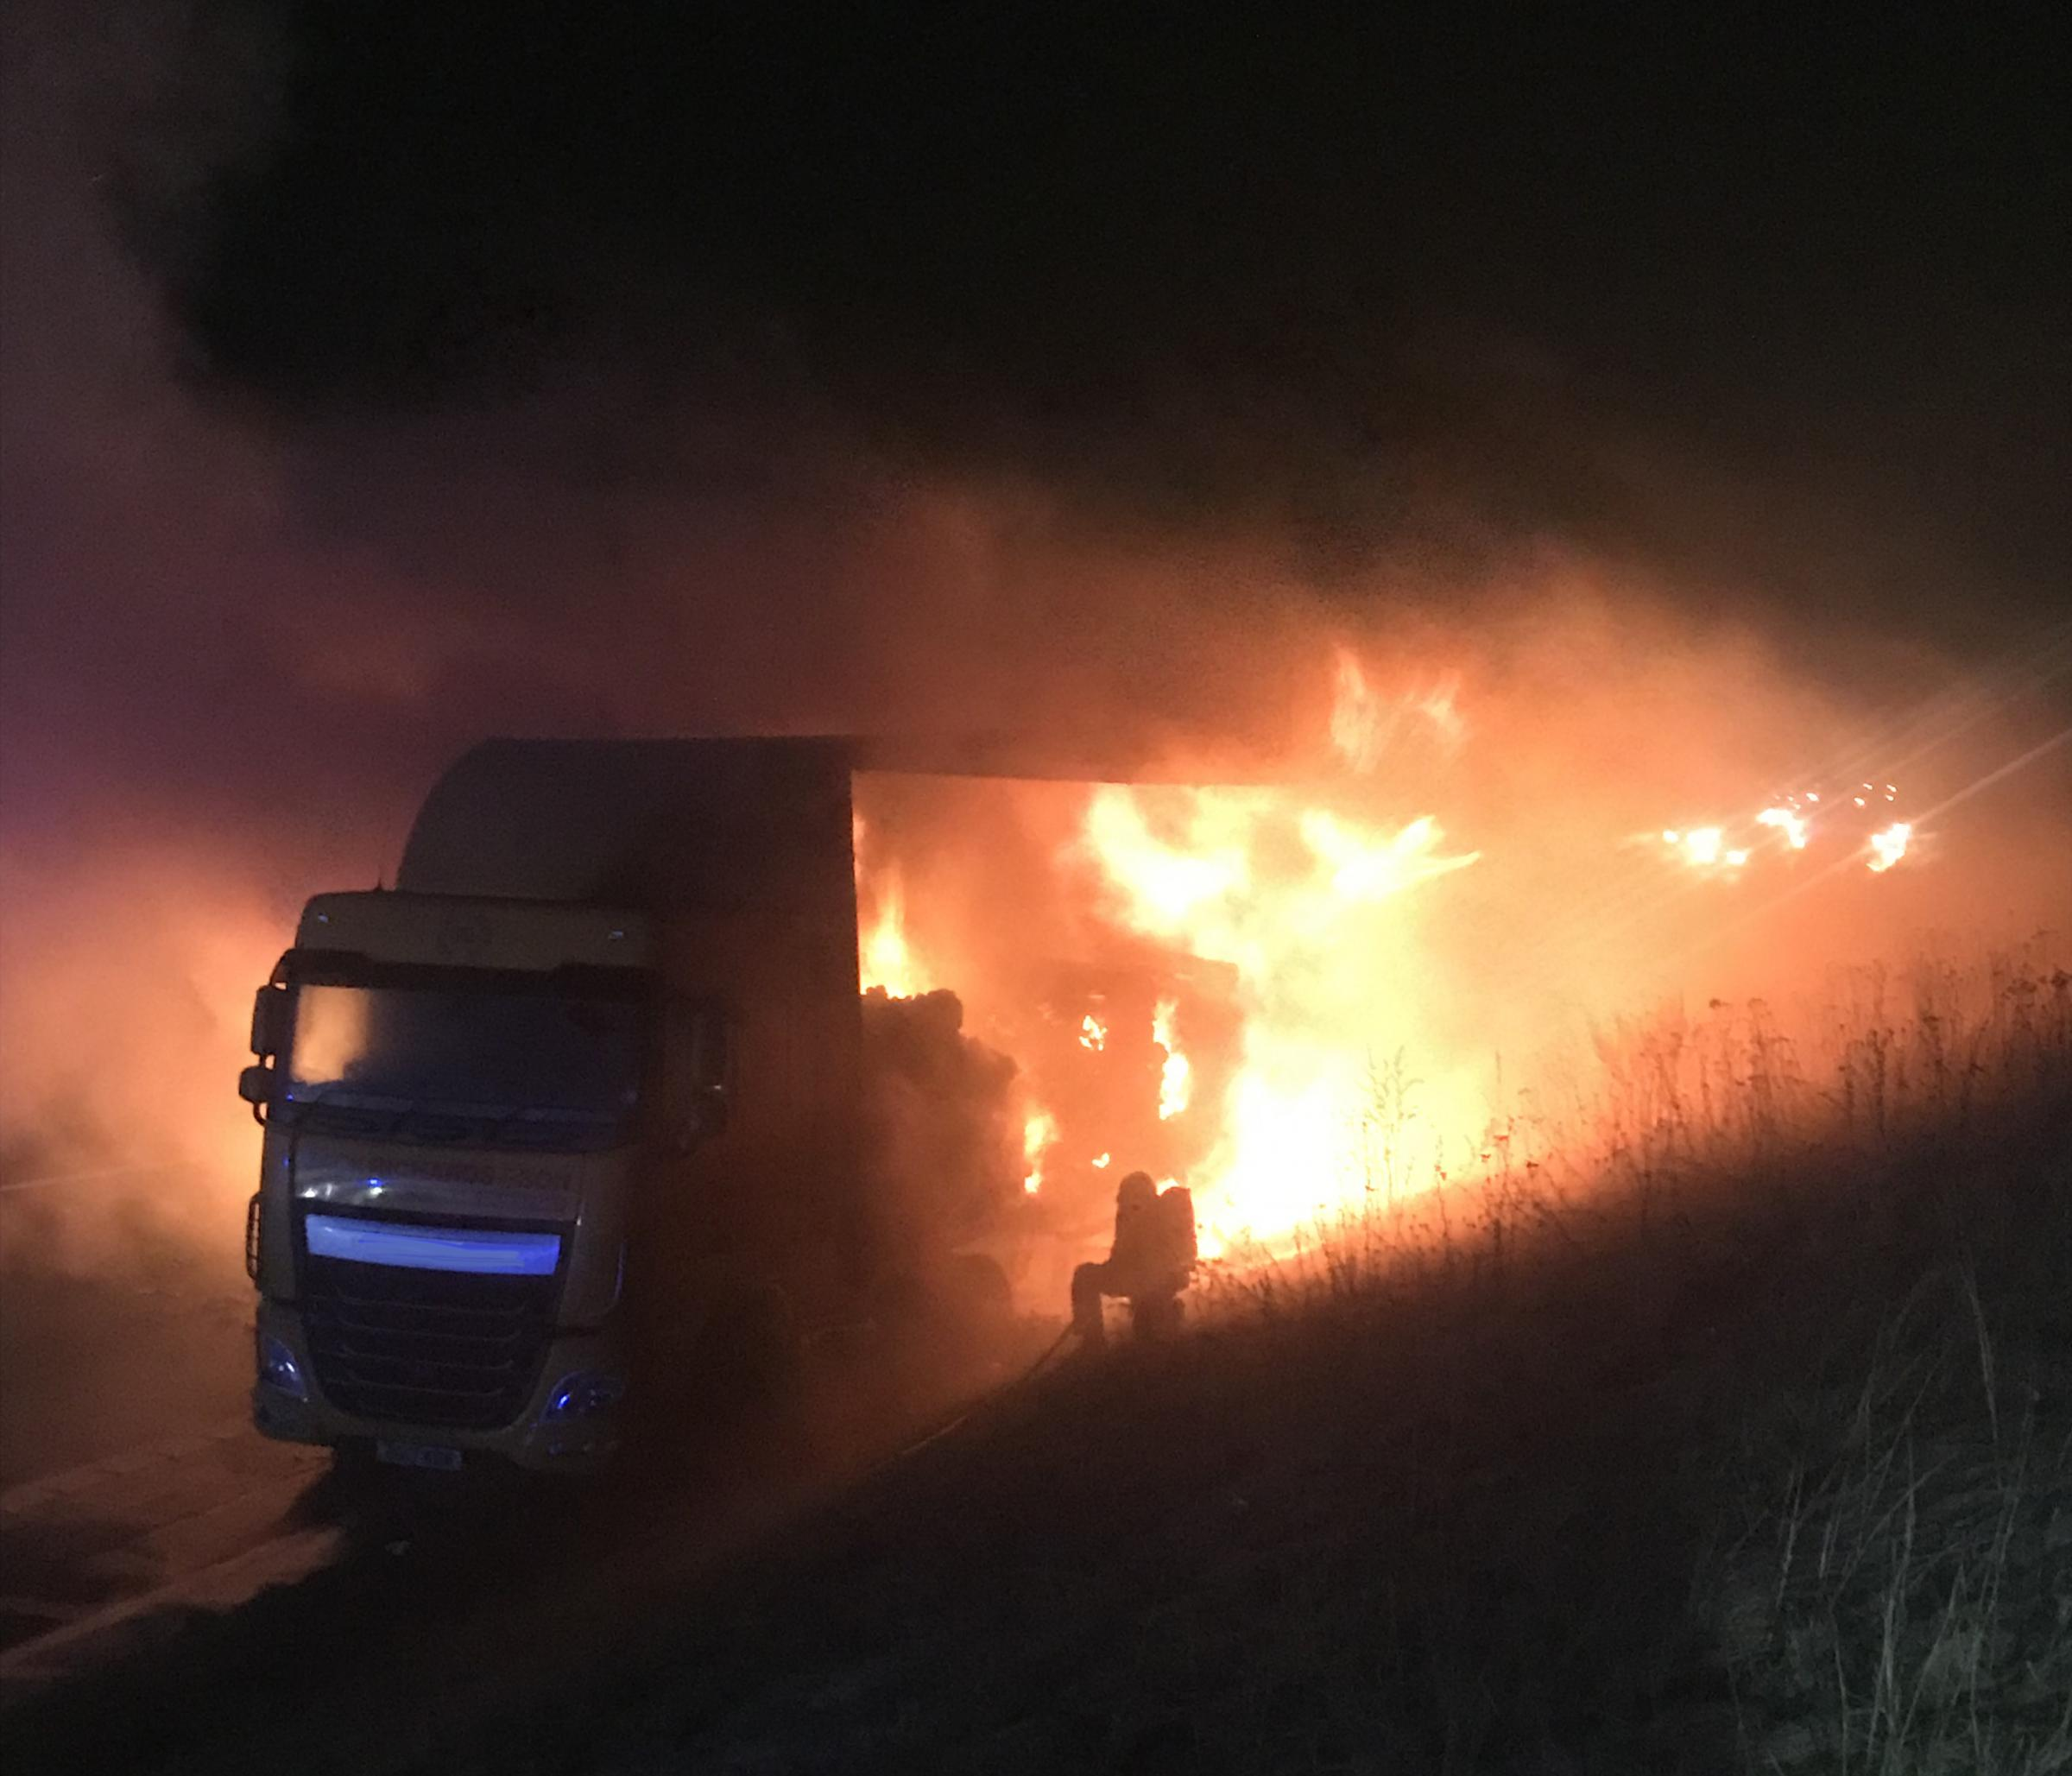 Lorry load of chocolate bursts into flames near M56